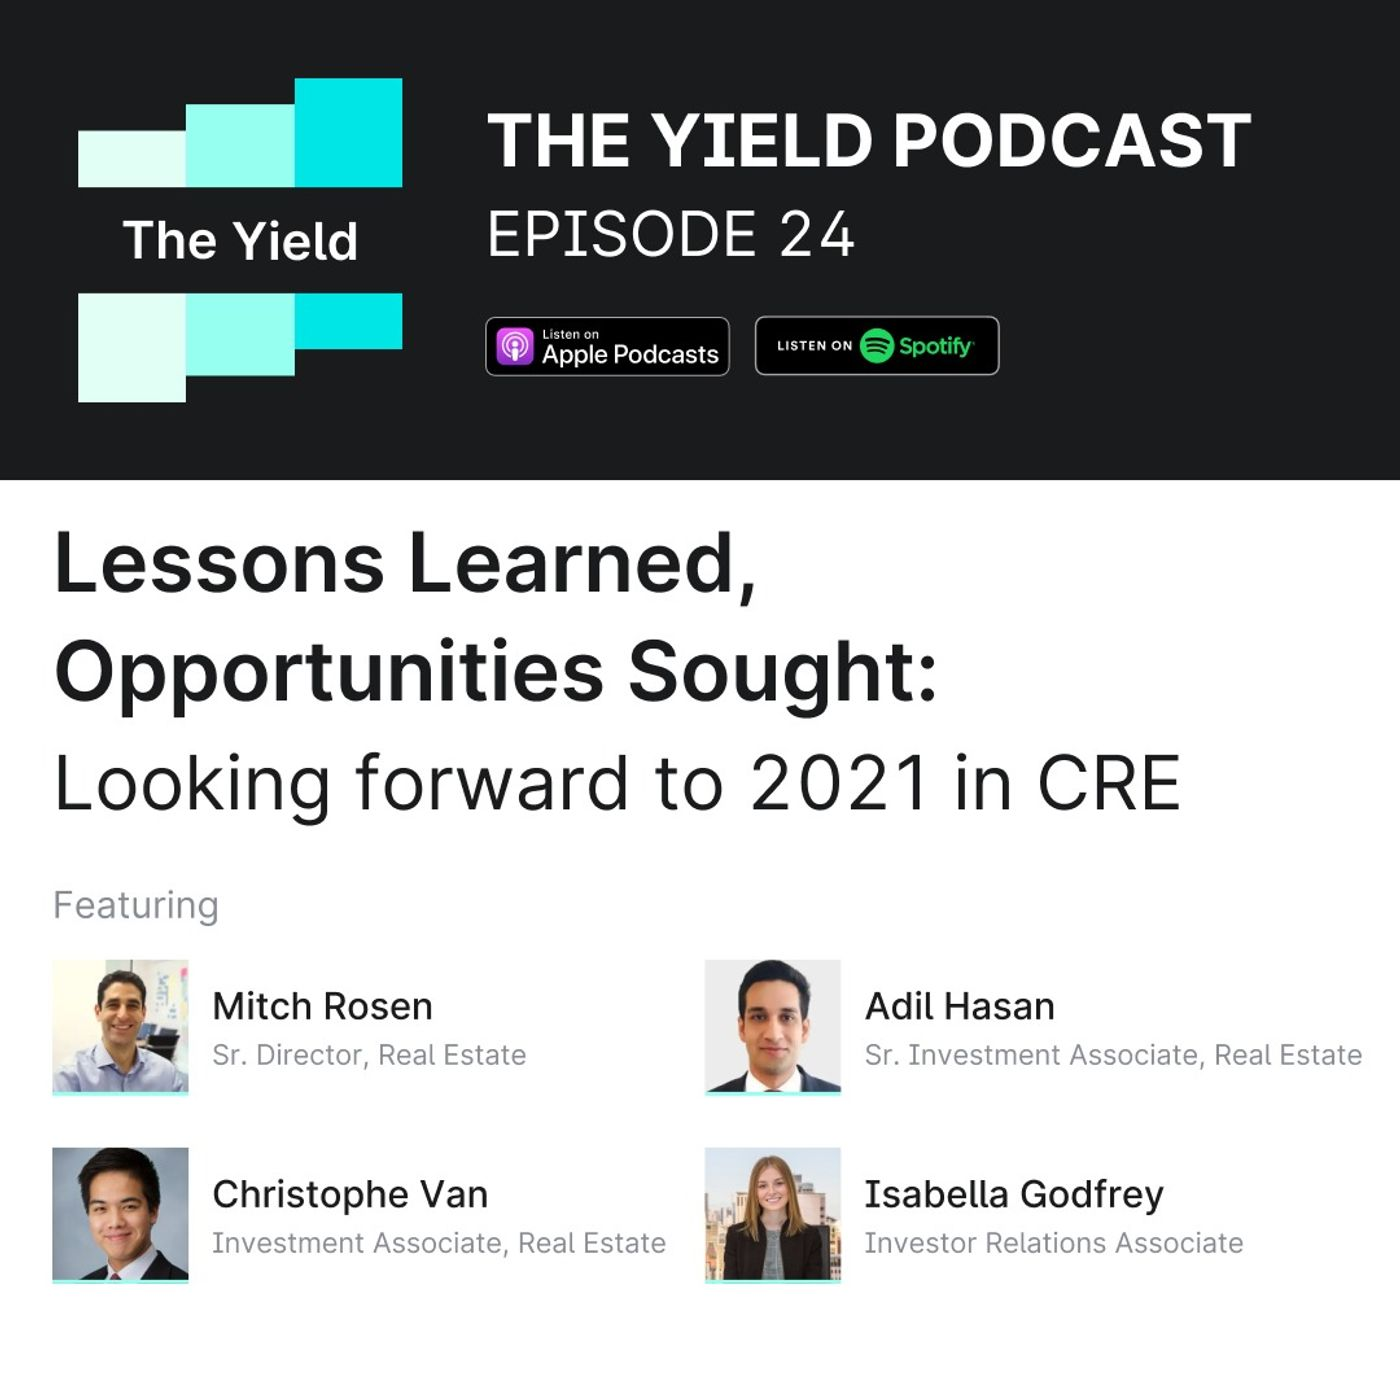 Lessons Learned, Opportunities Sought: Looking forward to 2021 in CRE